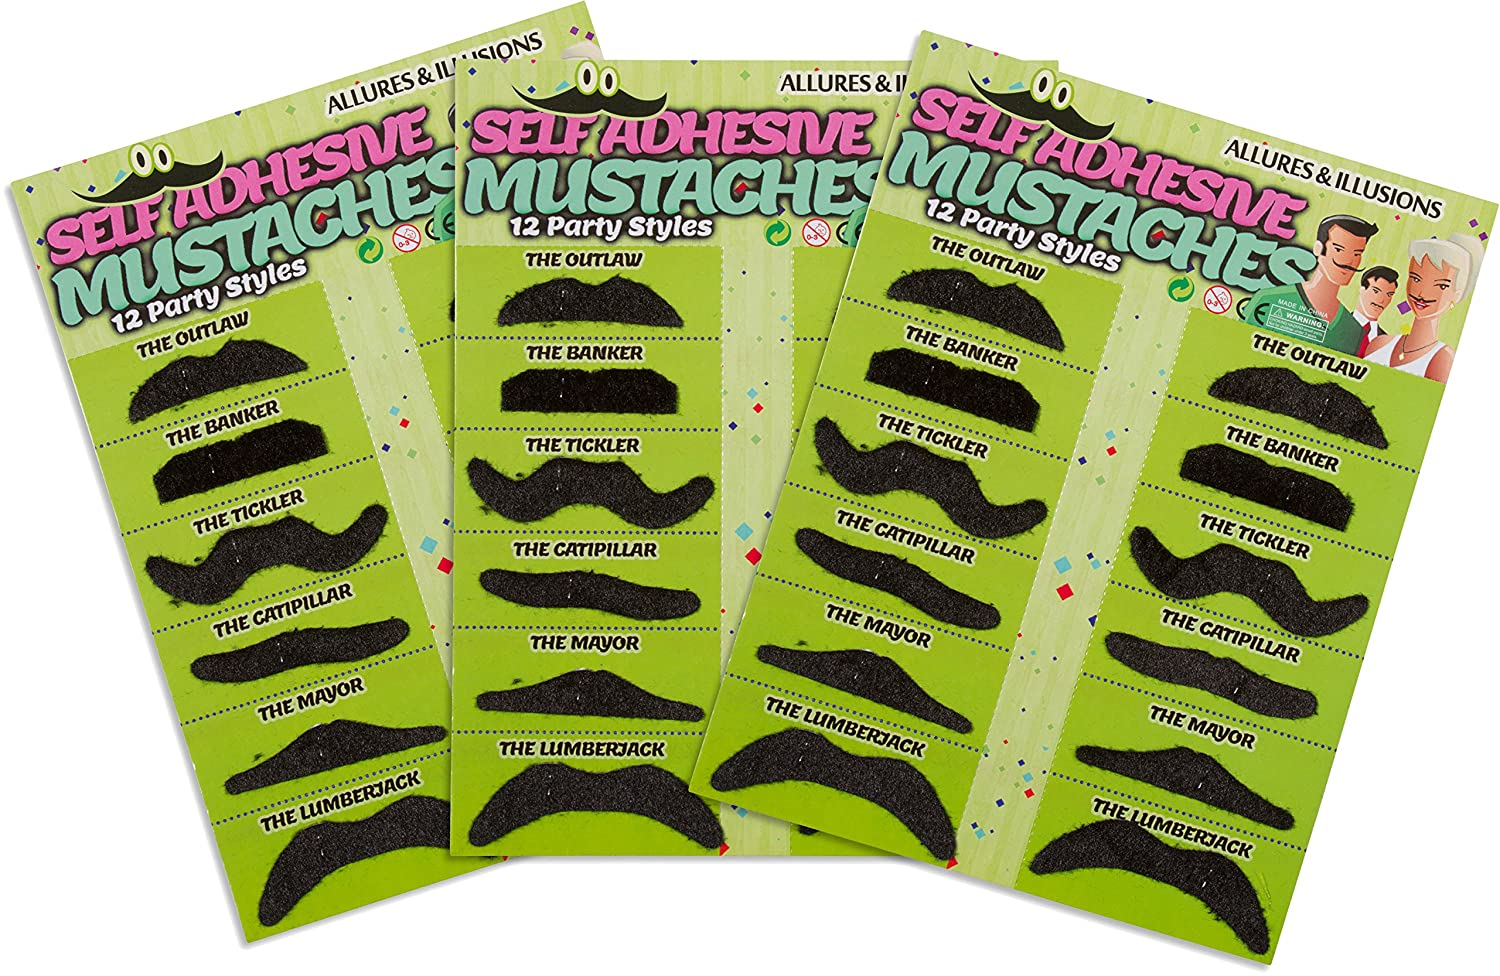 Allures & Illusions Fake Mustaches - 36 Costume & Party Moustaches Red Cup Pong - Toys MUSTACHE-36AI